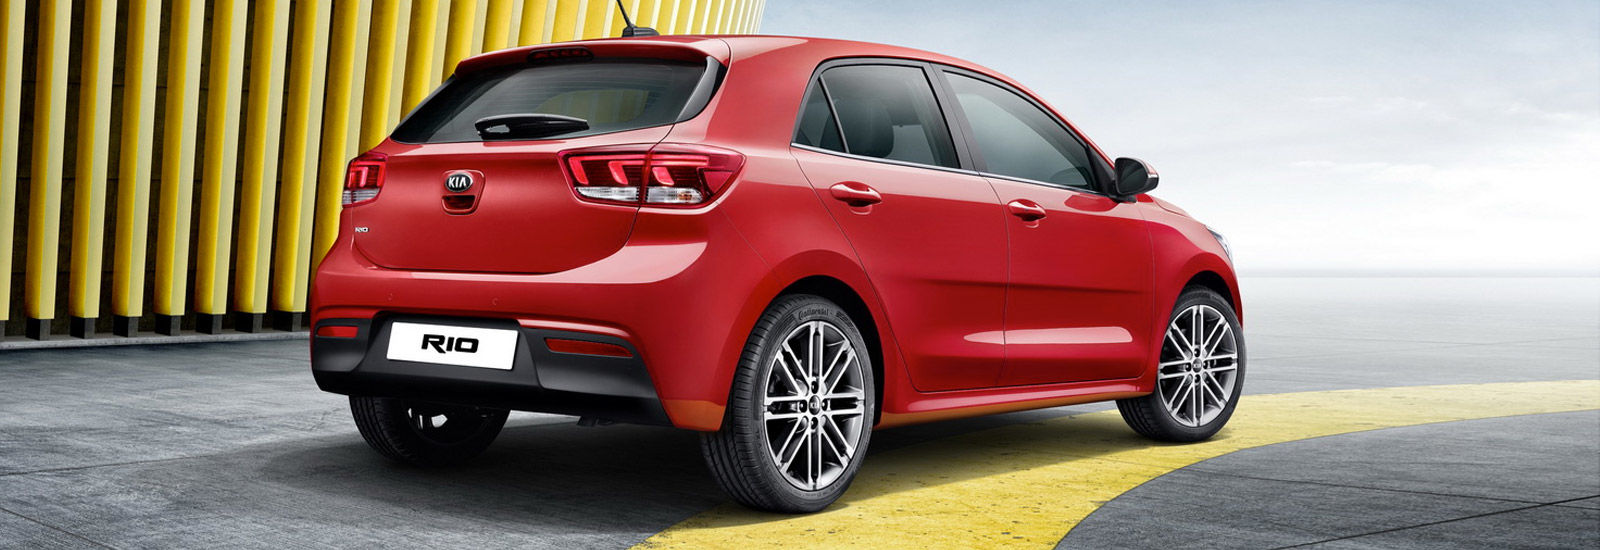 The new rio s less curvaceous rear sports a pair of updated brake light that appear to feature led technology the bumper is fitted with a modified black